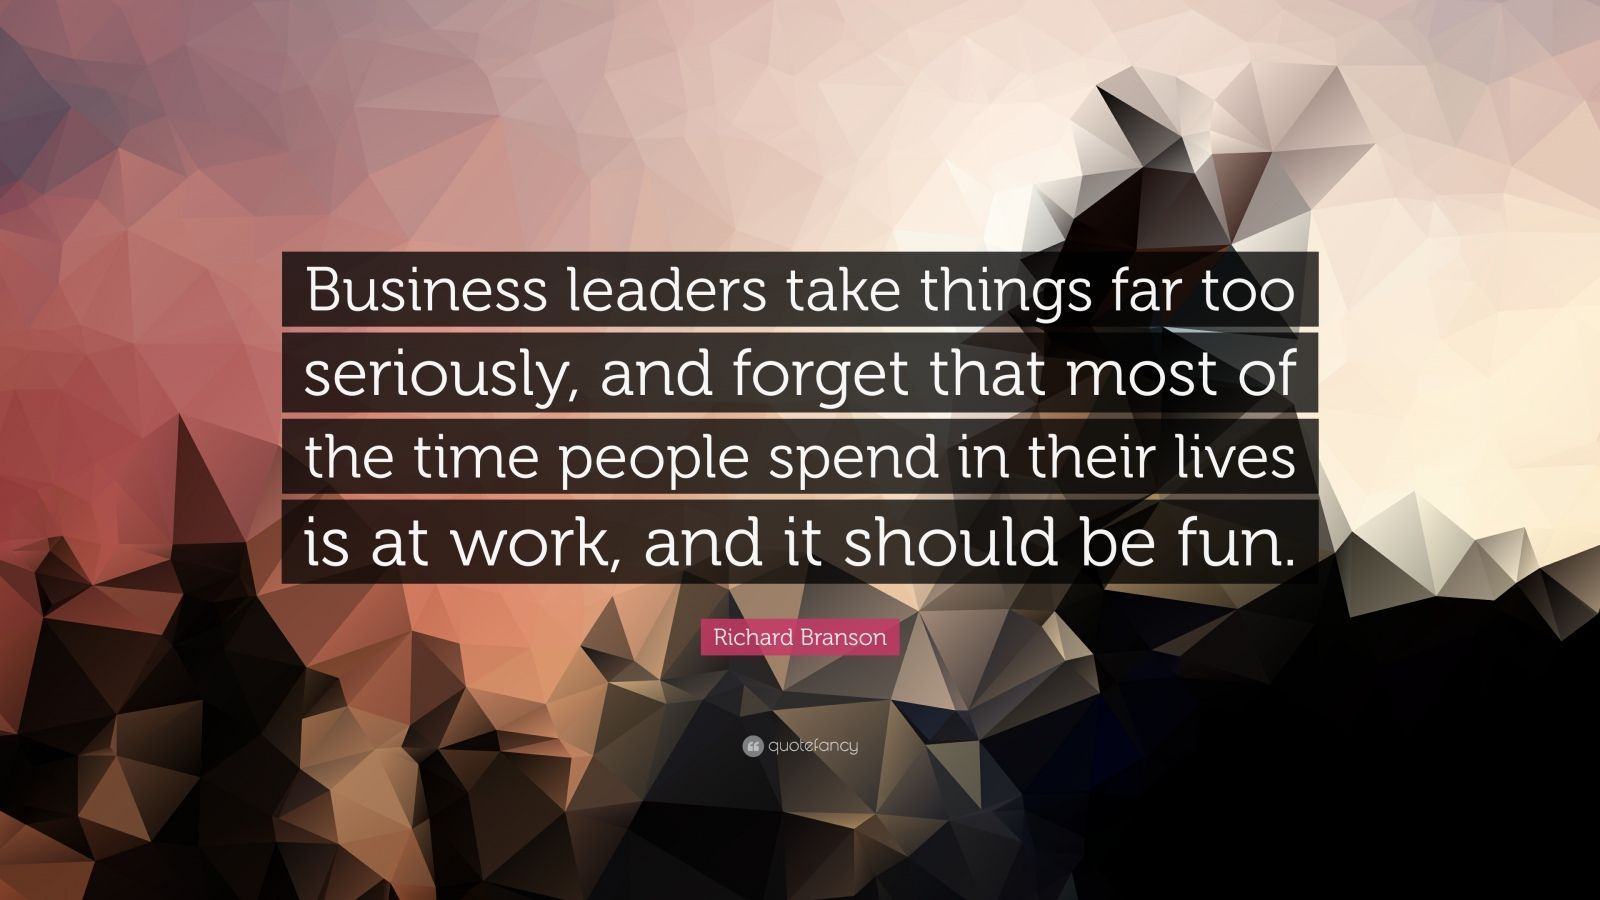 """Richard Branson Quote: """"Business leaders take things far too seriously, and forget that most of the time people spend in their lives is at work, and it should be fun."""""""